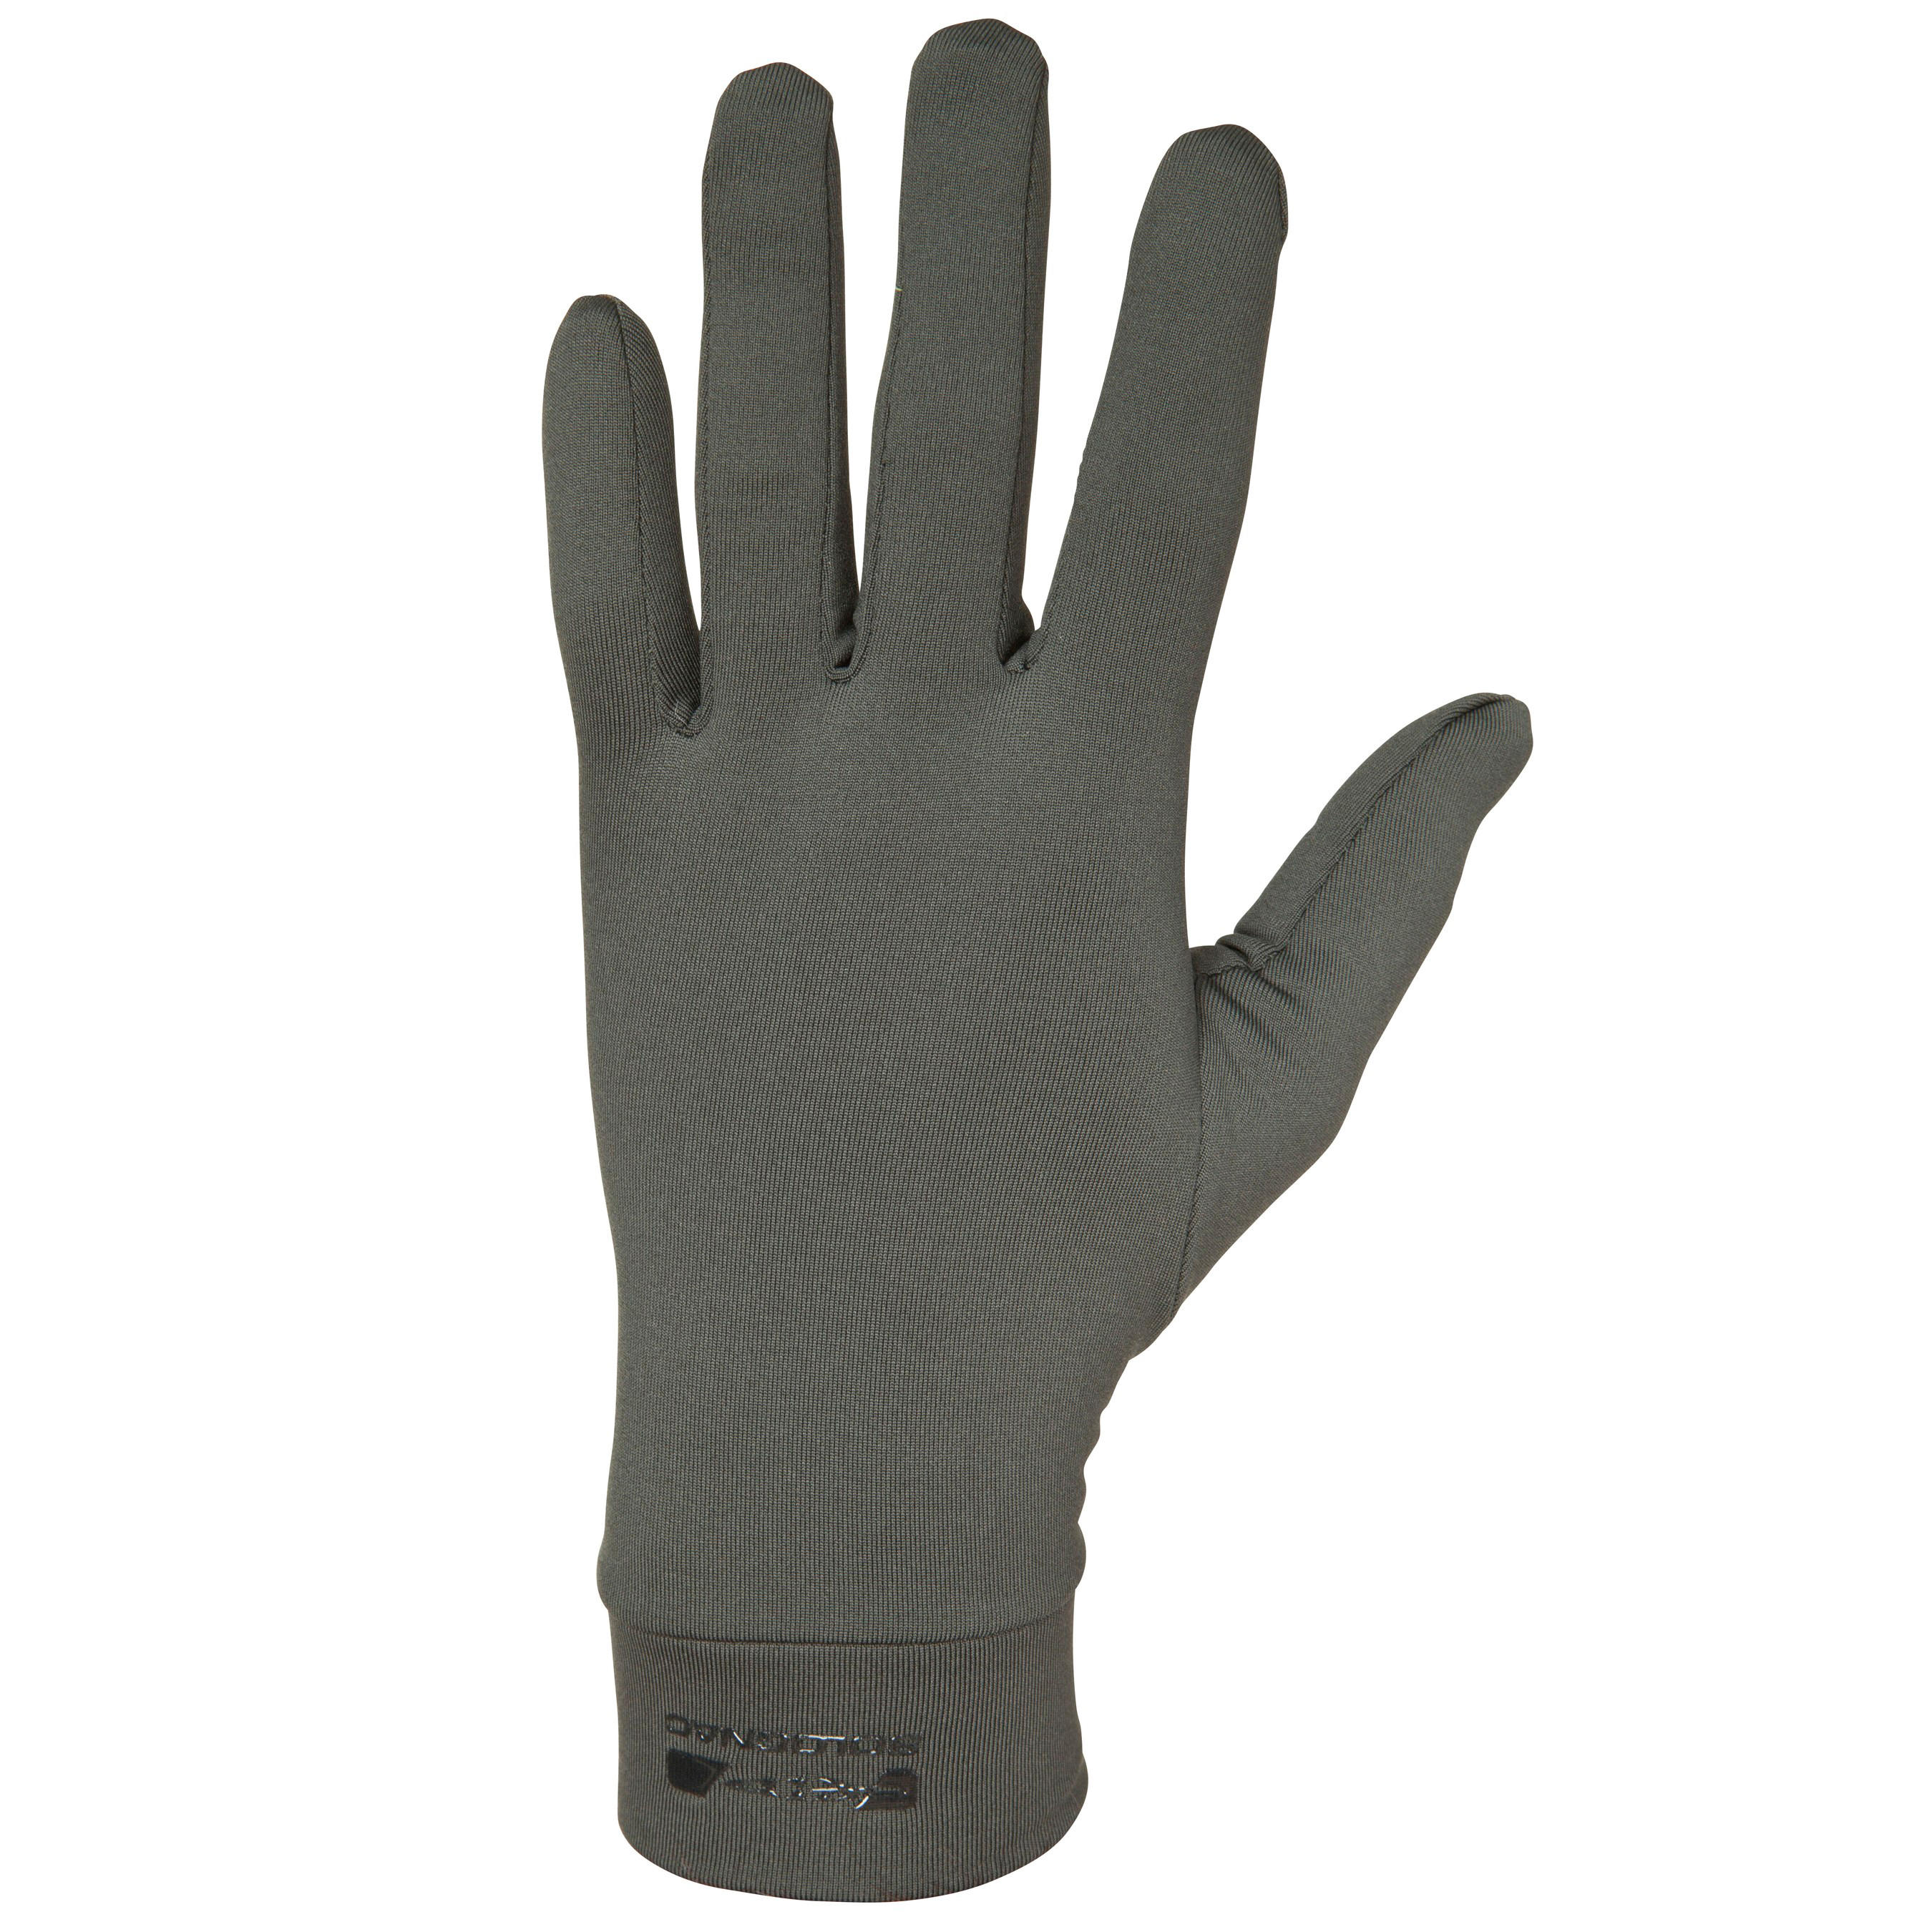 100 Hunting Liner Gloves - Olive Black